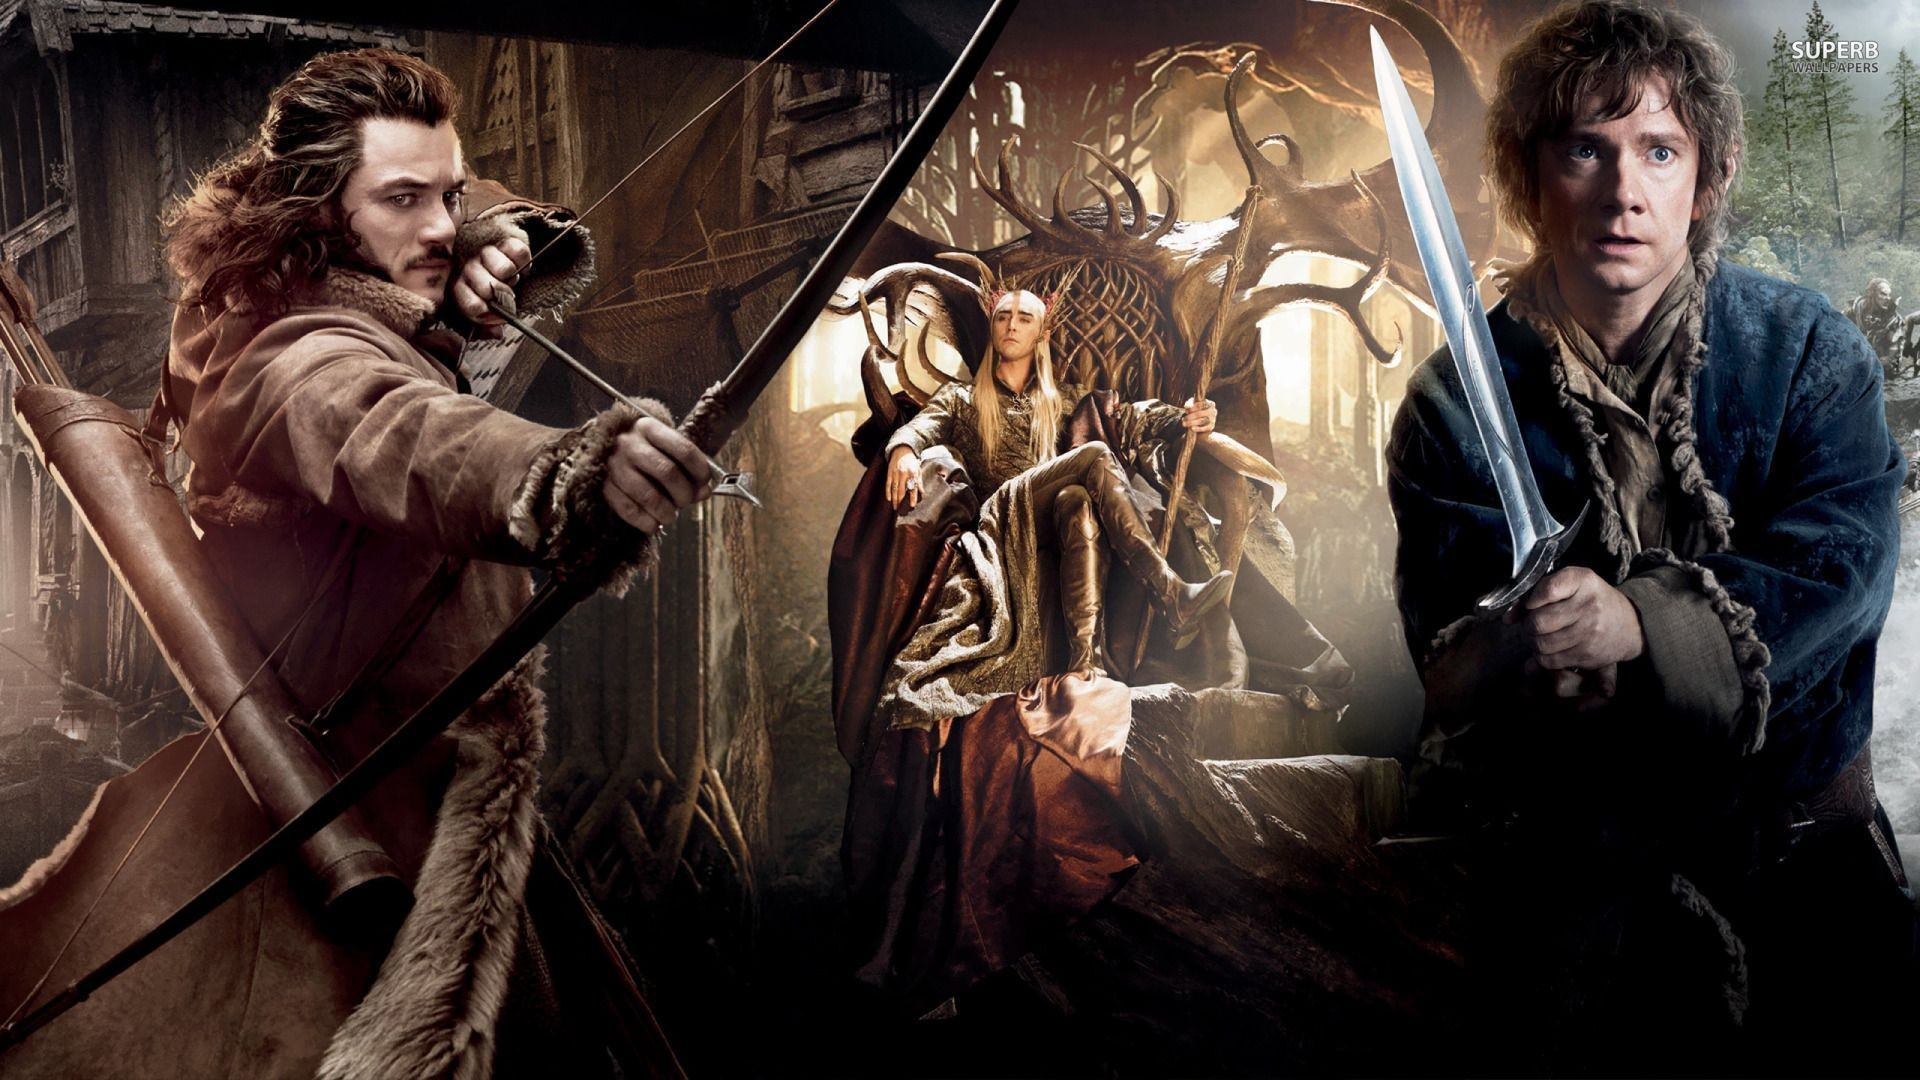 The Hobbit: The Desolation of Smaug wallpaper – Movie wallpapers .